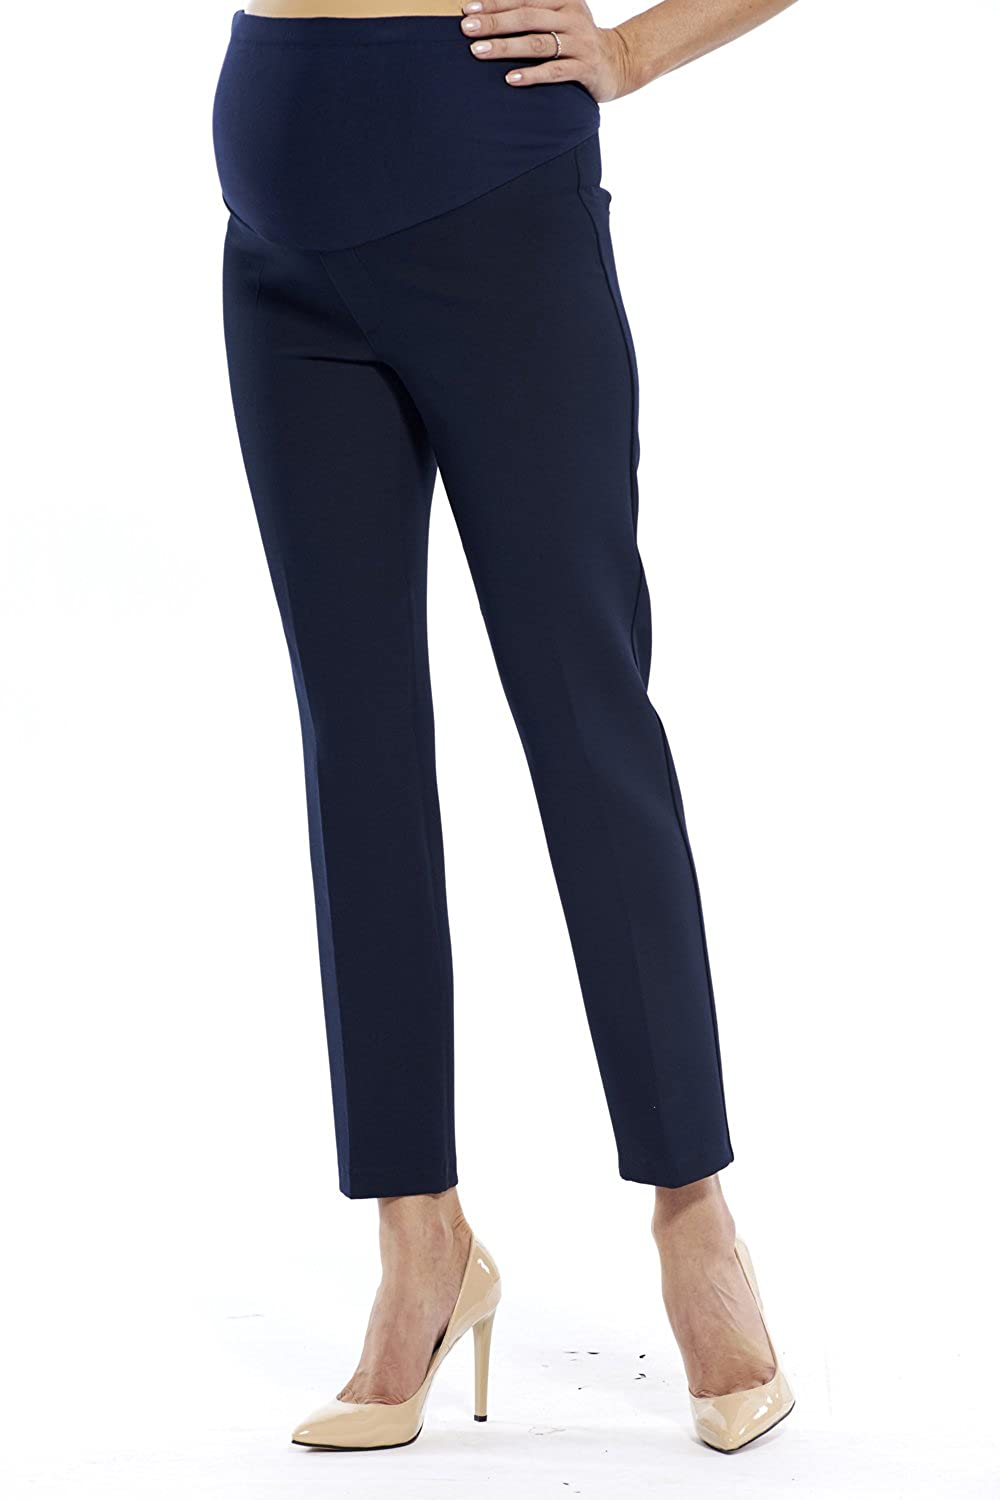 Motherway Women's Pleat-Front Maternity Trousers